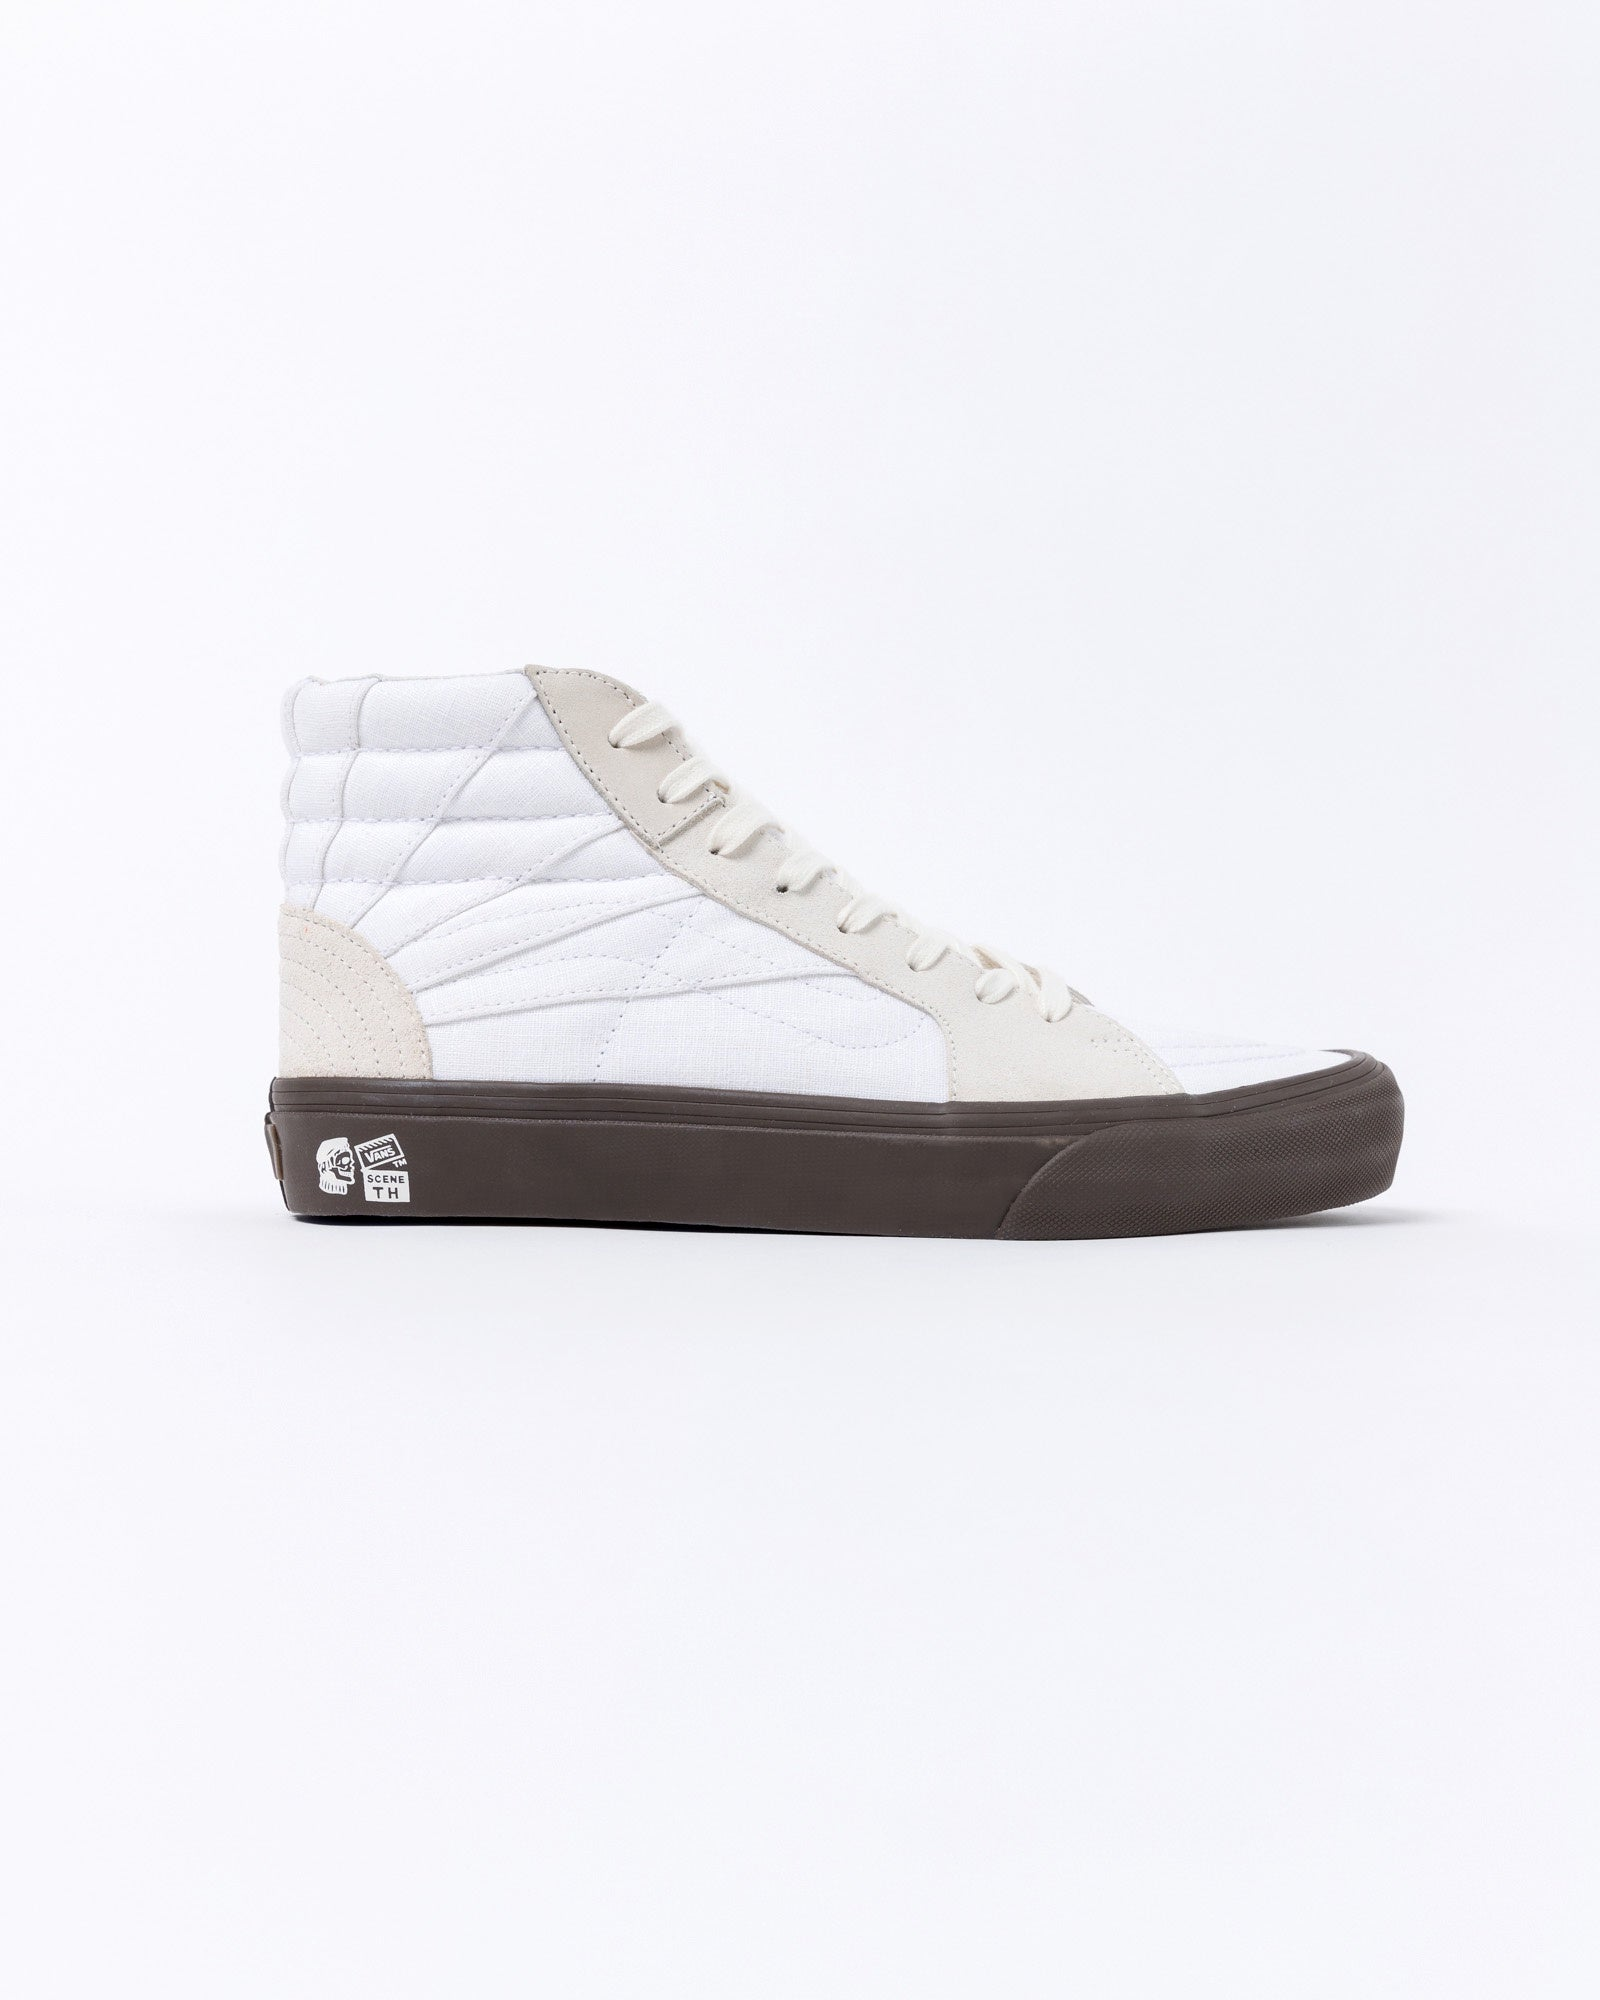 UA TH SK8-Hi SR LX in Linen Suede Sun Ray